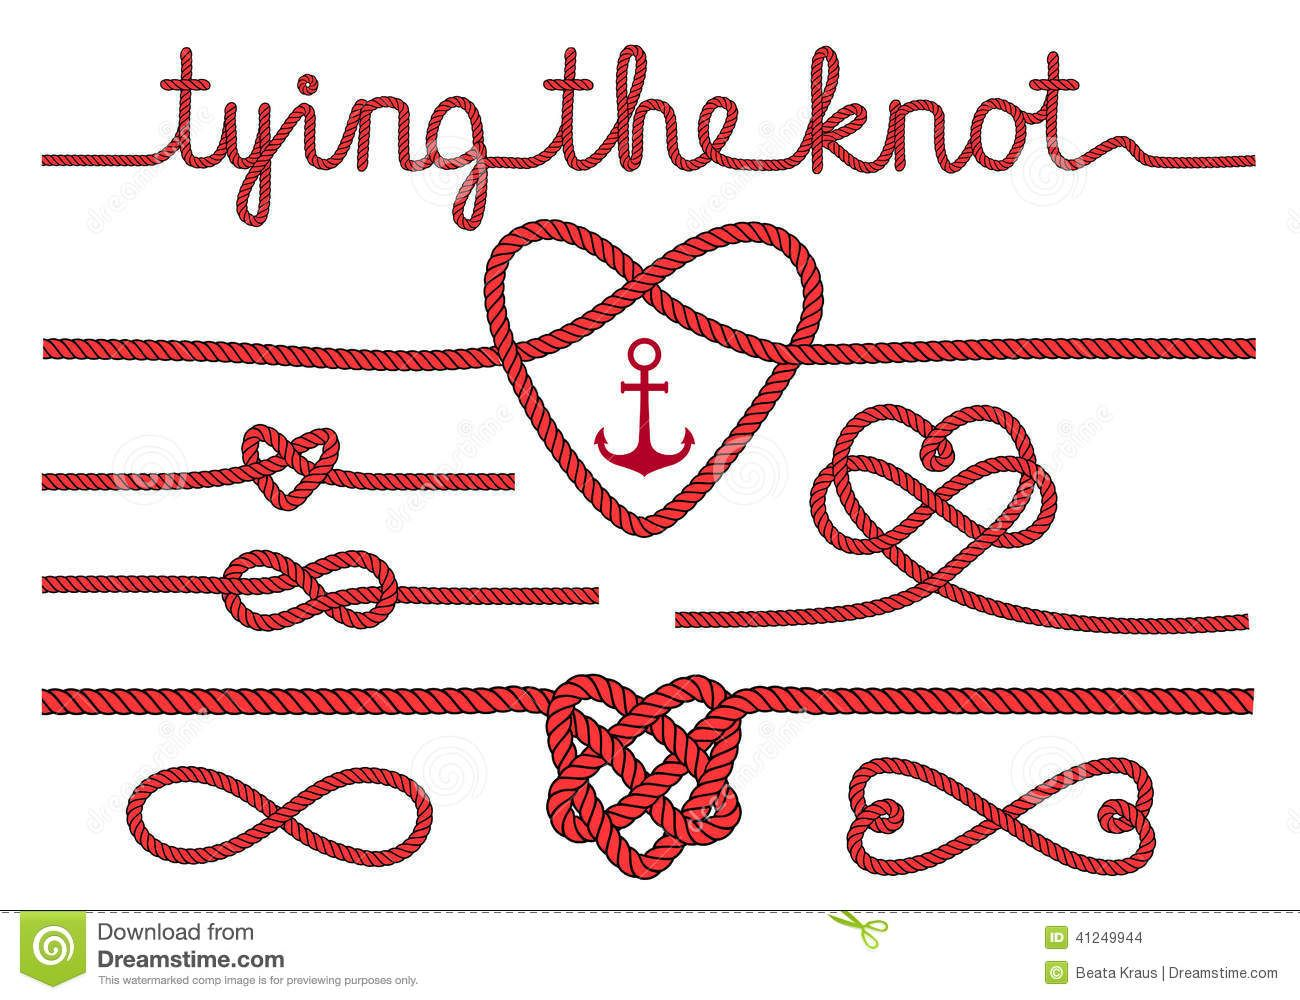 knot clipart rope heart